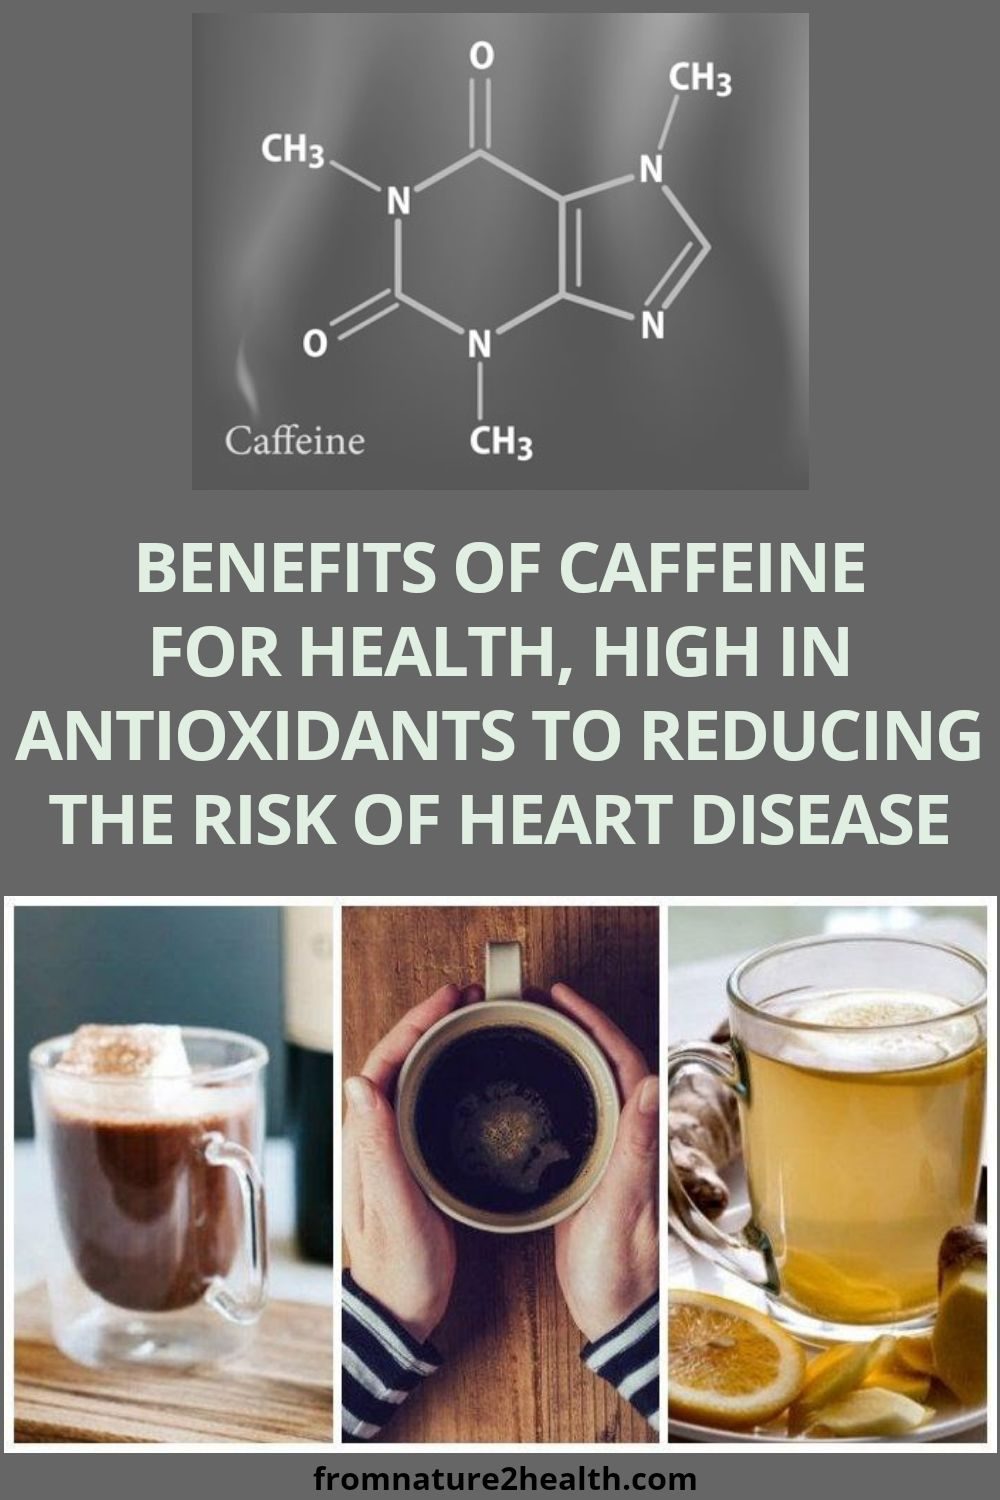 Benefits of Caffeine for Health, High in Antioxidants to Reducing The Risk of Heart Disease